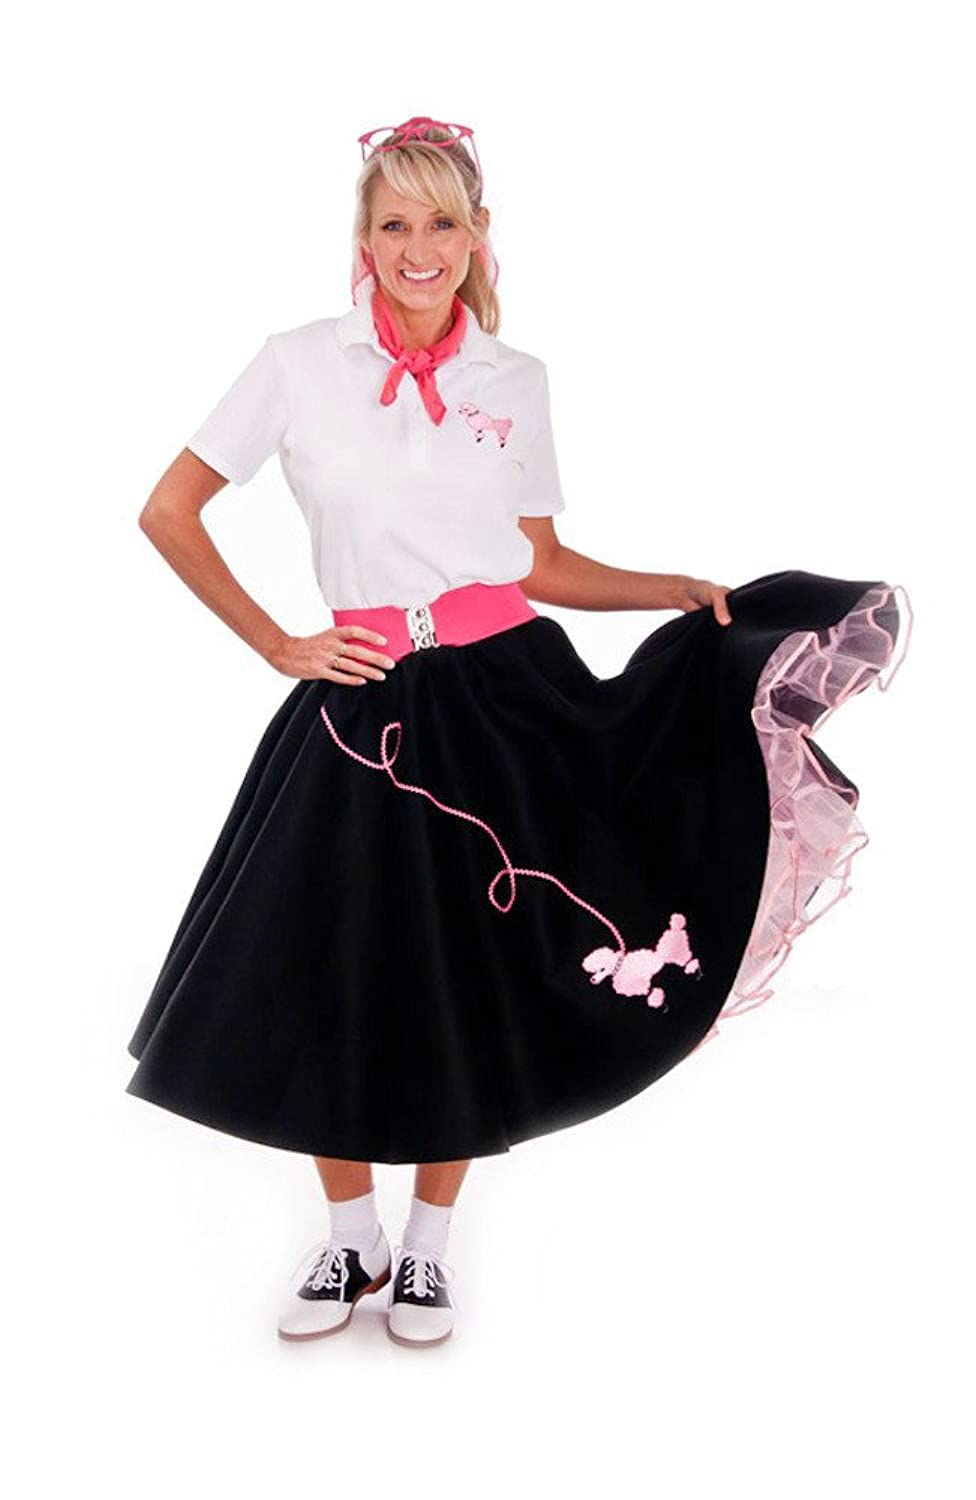 Amazon Hip Hop 50s Shop Adult 4 Piece Poodle Skirt Costume Set Clothing